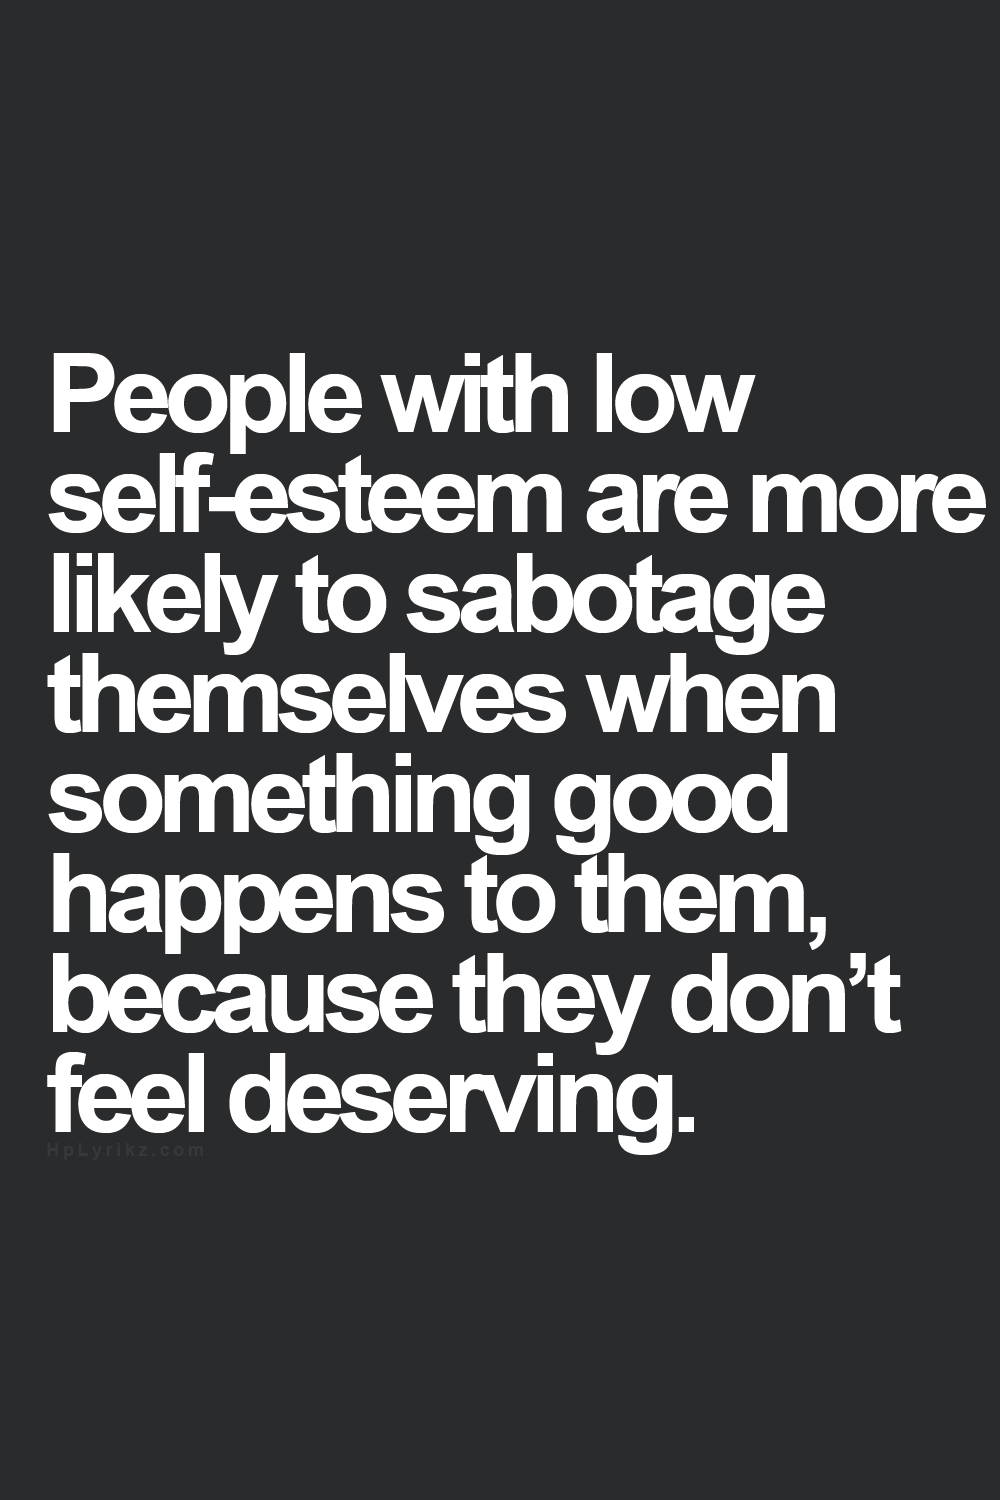 Quotes About Self Esteem People With Low Selfesteem Are More Likely To Sabotage Themselves